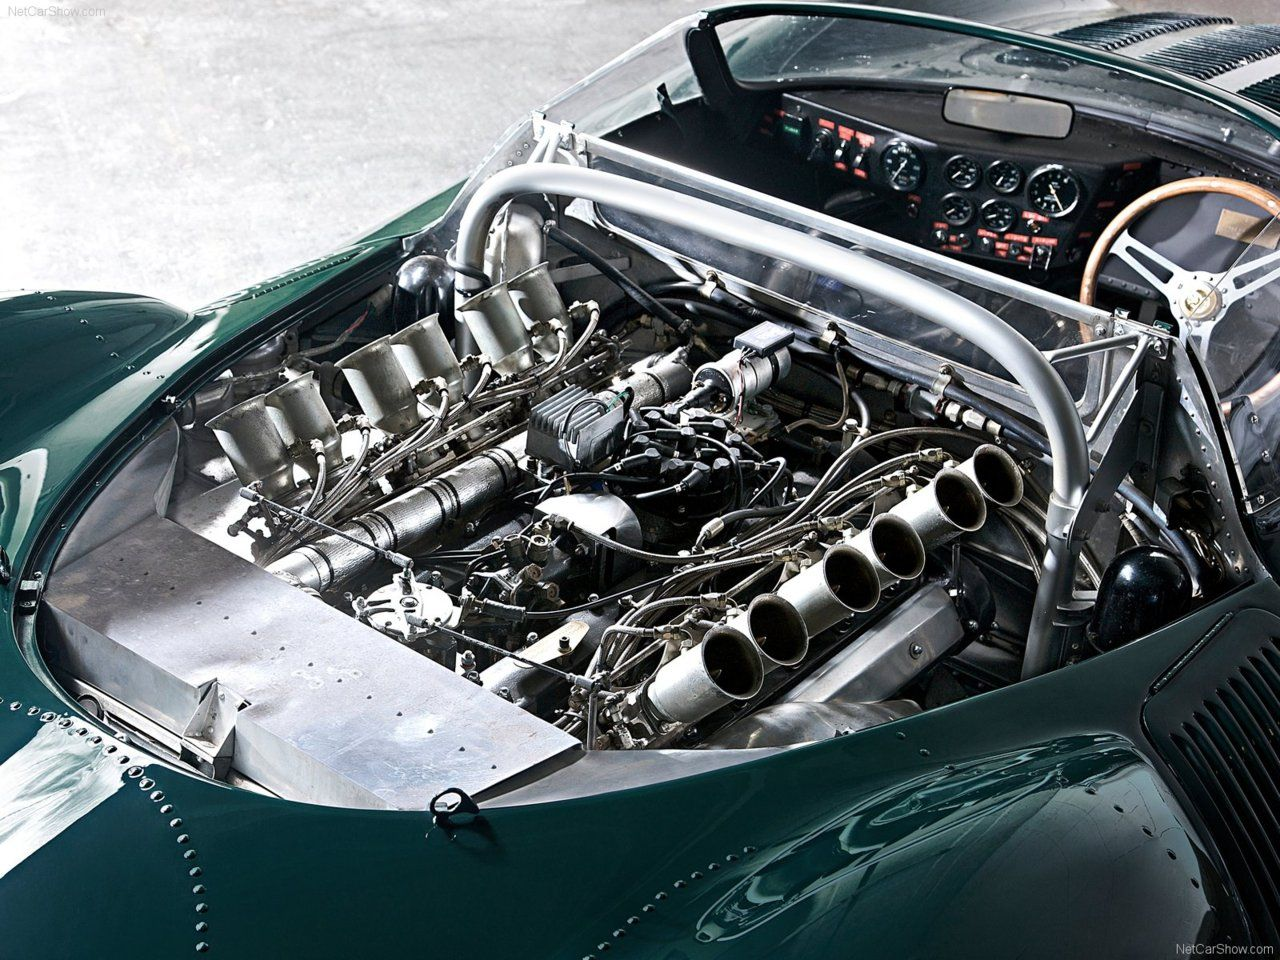 The Jaguar Xj13 Rear Engined V12 Developed By Jaguar To